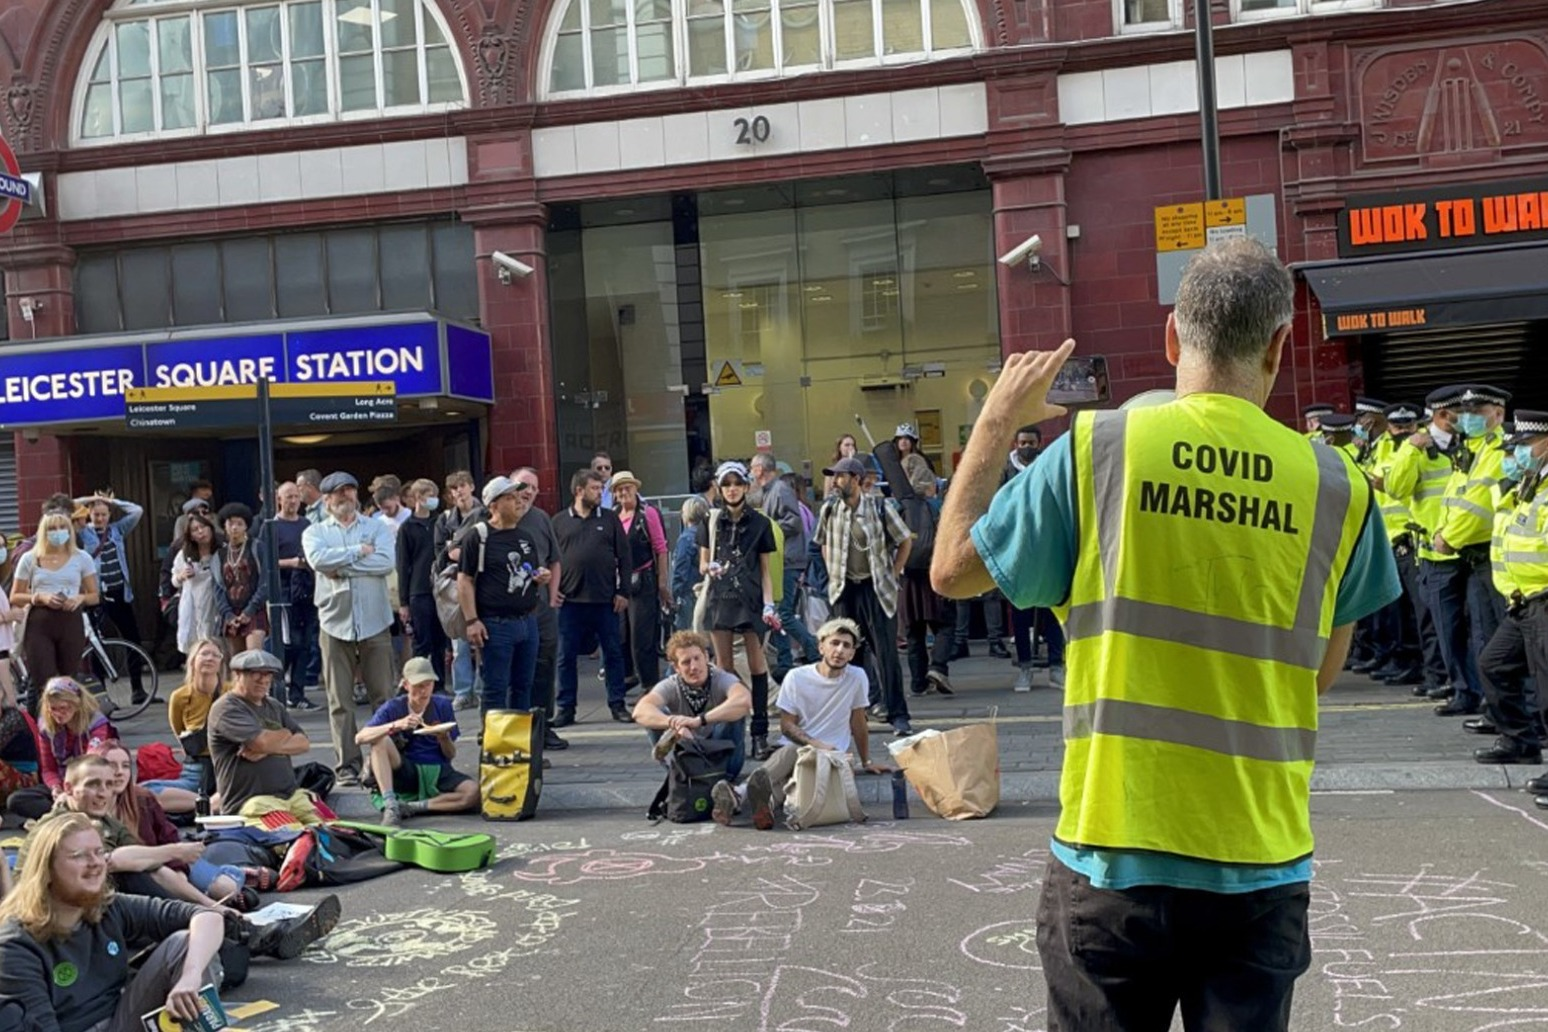 Extinction Rebellion block roads in central London in climate crisis protests